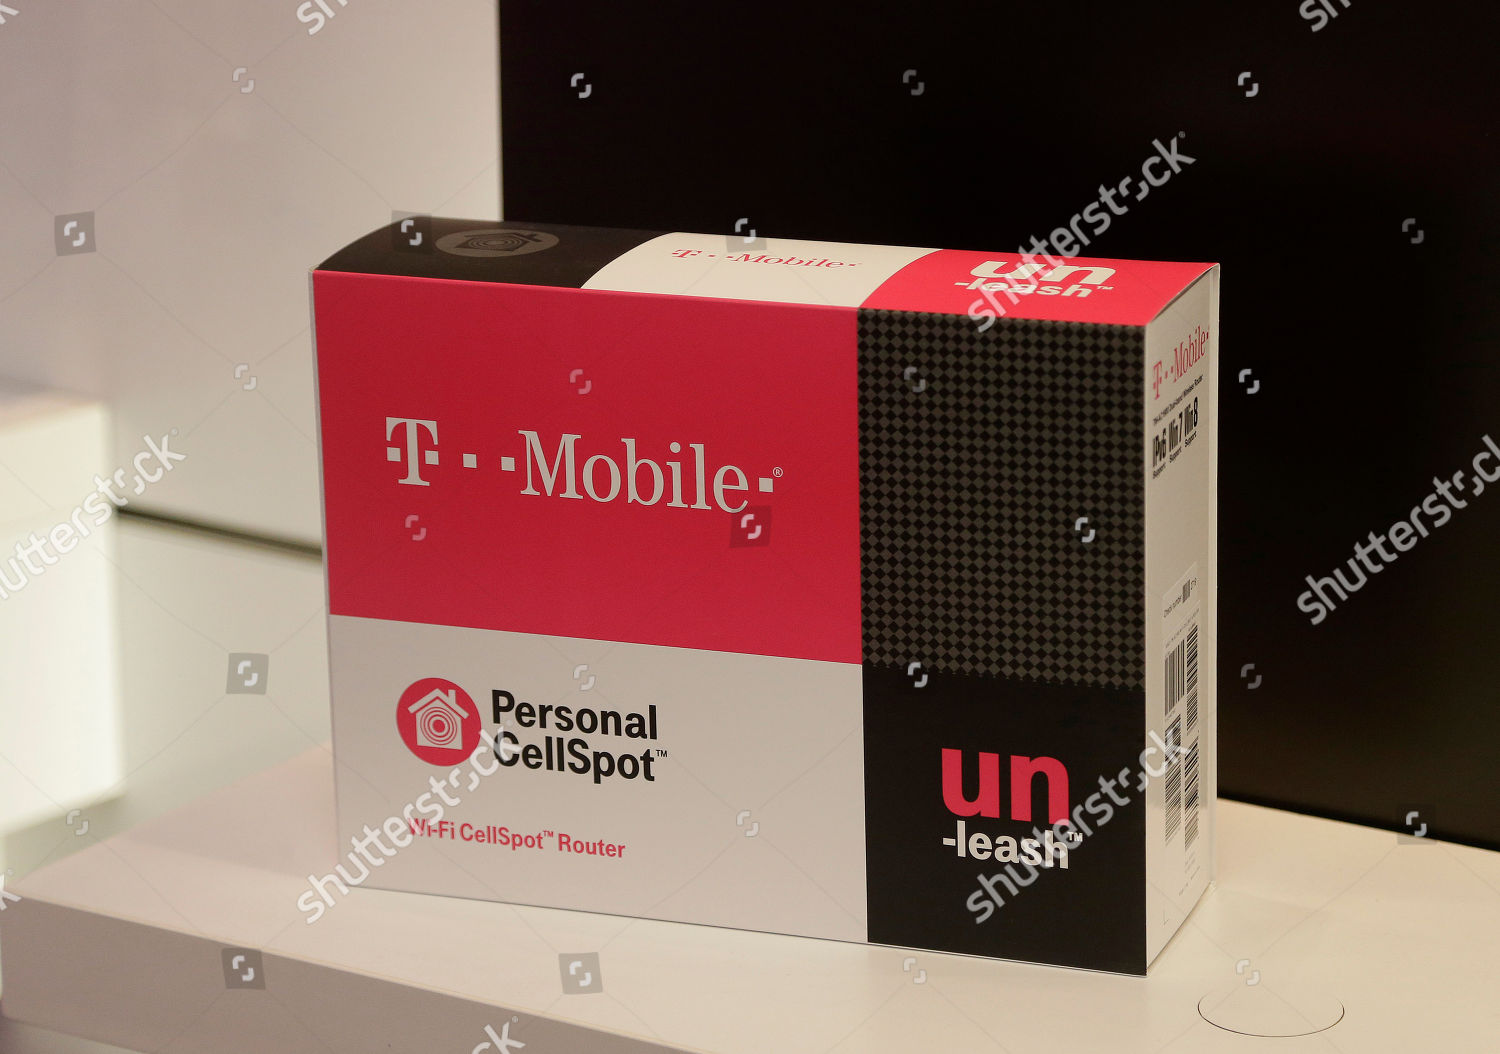 packaging TMobile Personal CellSpot WiFi router shown